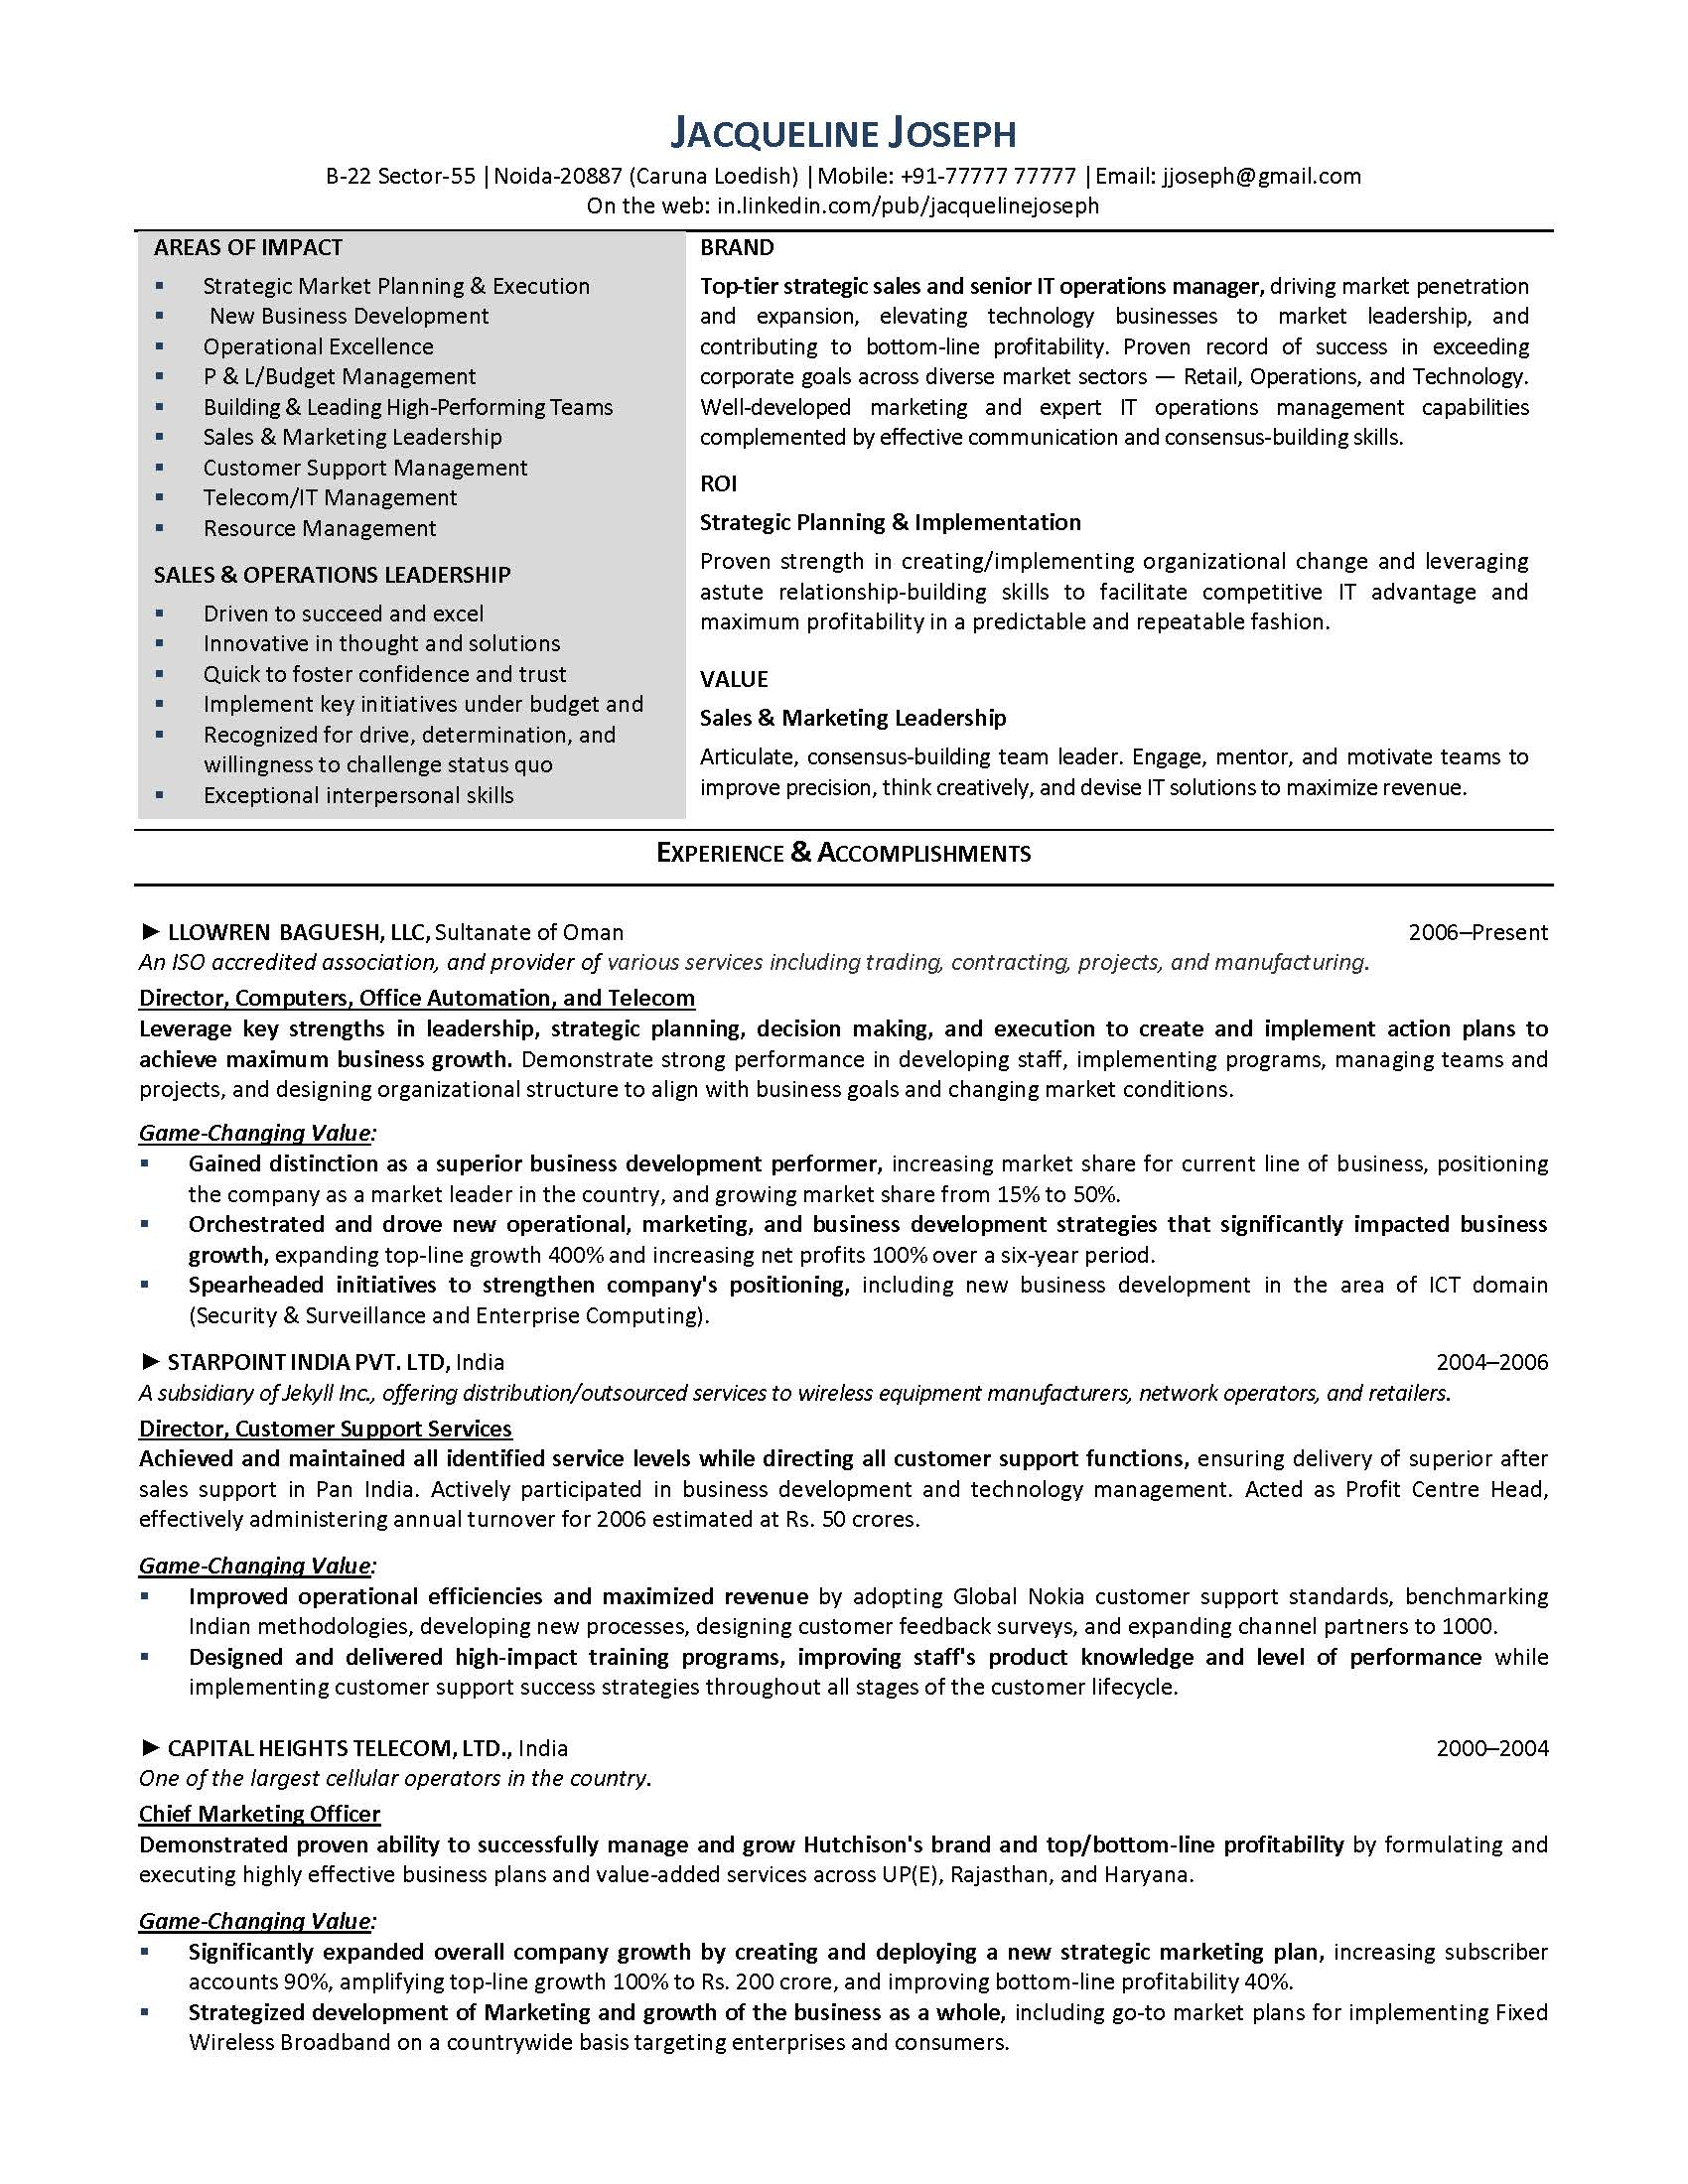 Resume Consulting Resume Buzzwords techno functional consultant sample resume qa games tester cover management consulting buzzwords construction it 1 resumehtml